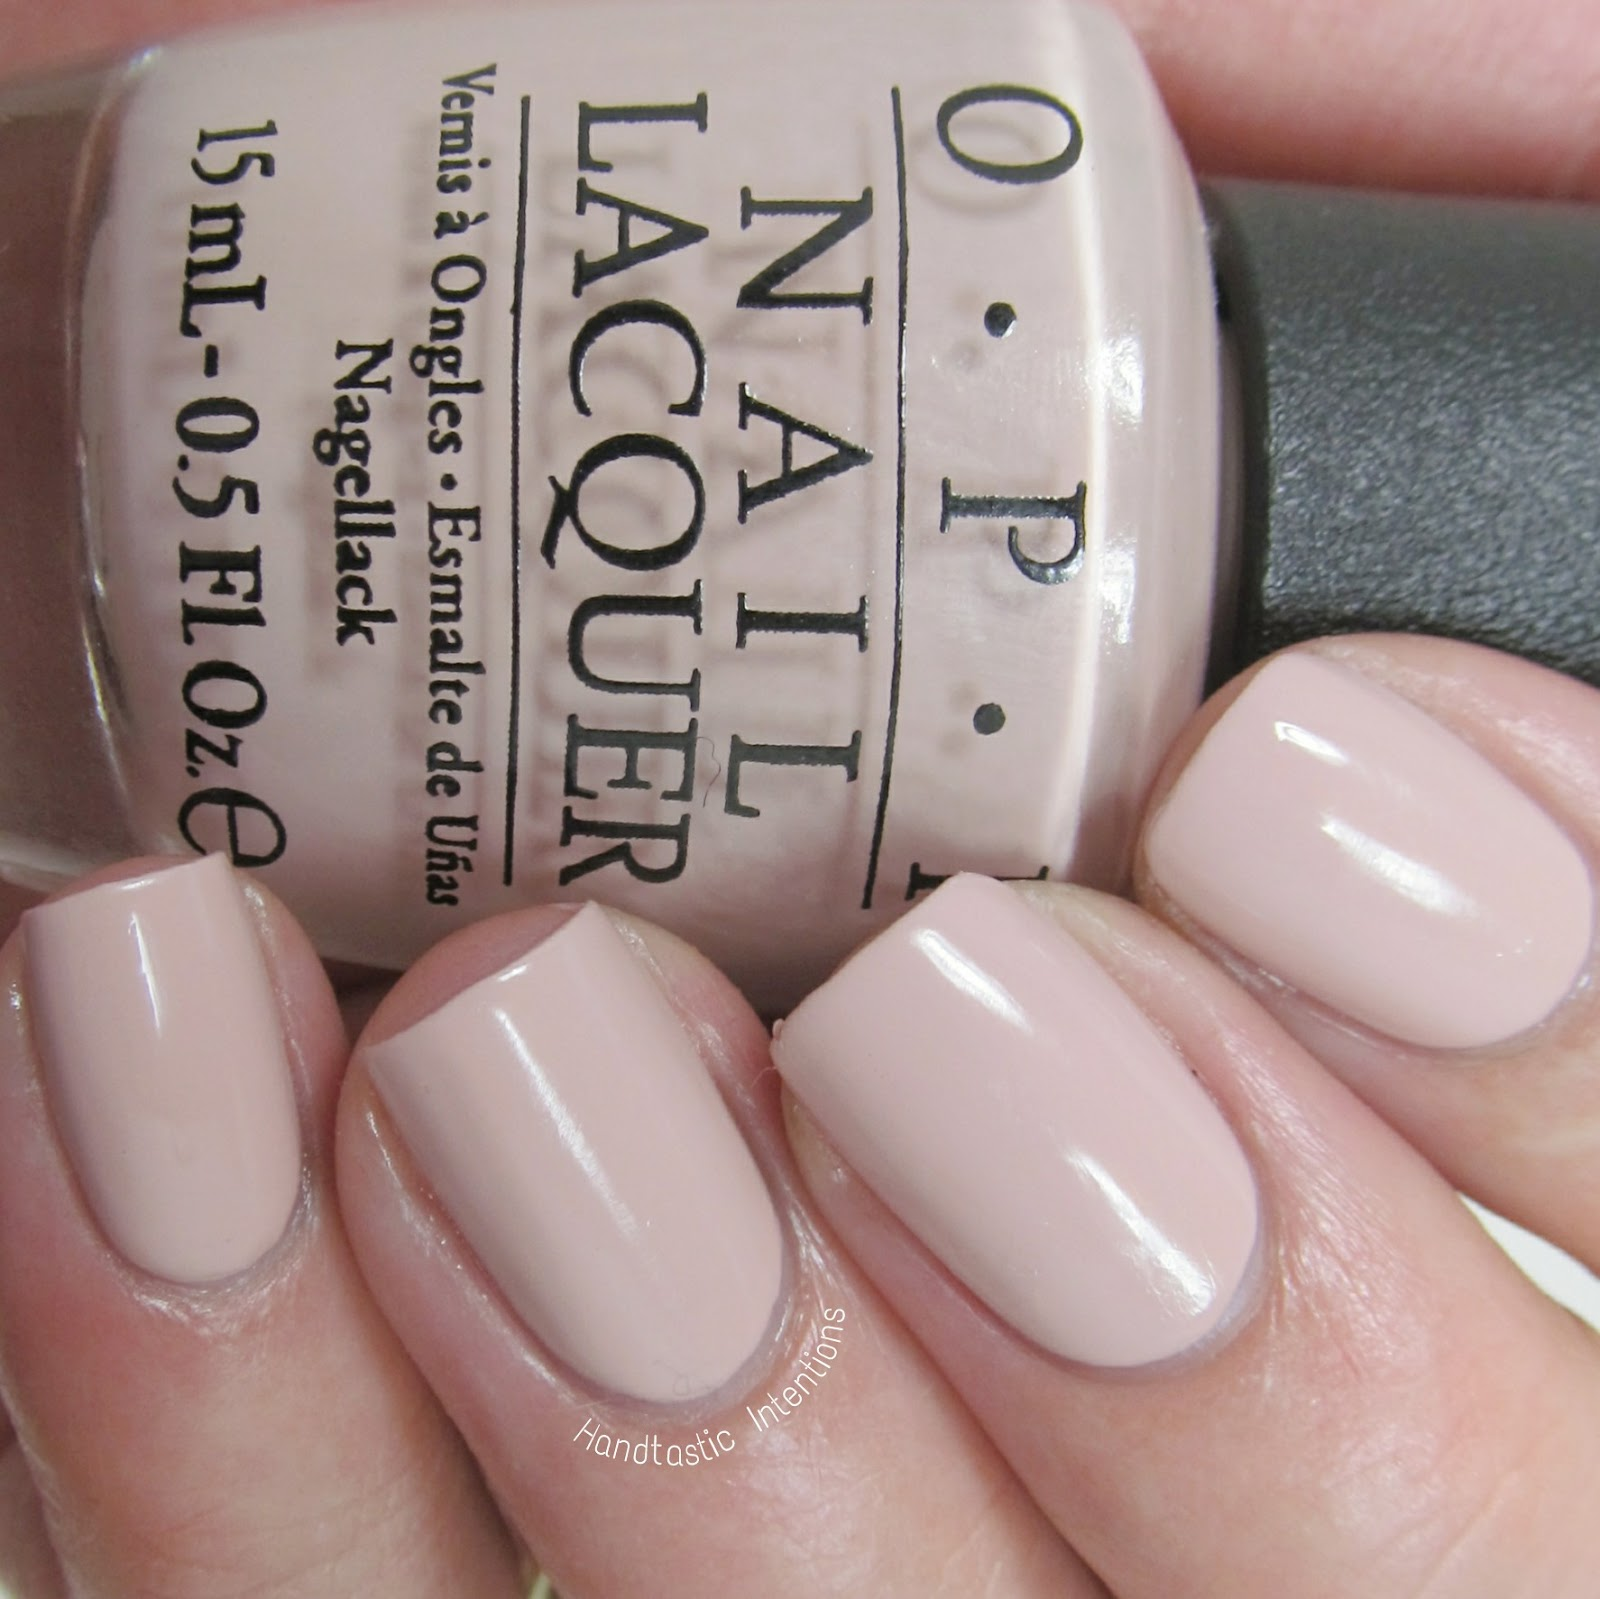 Handtastic Intentions: OPI Venice Collection